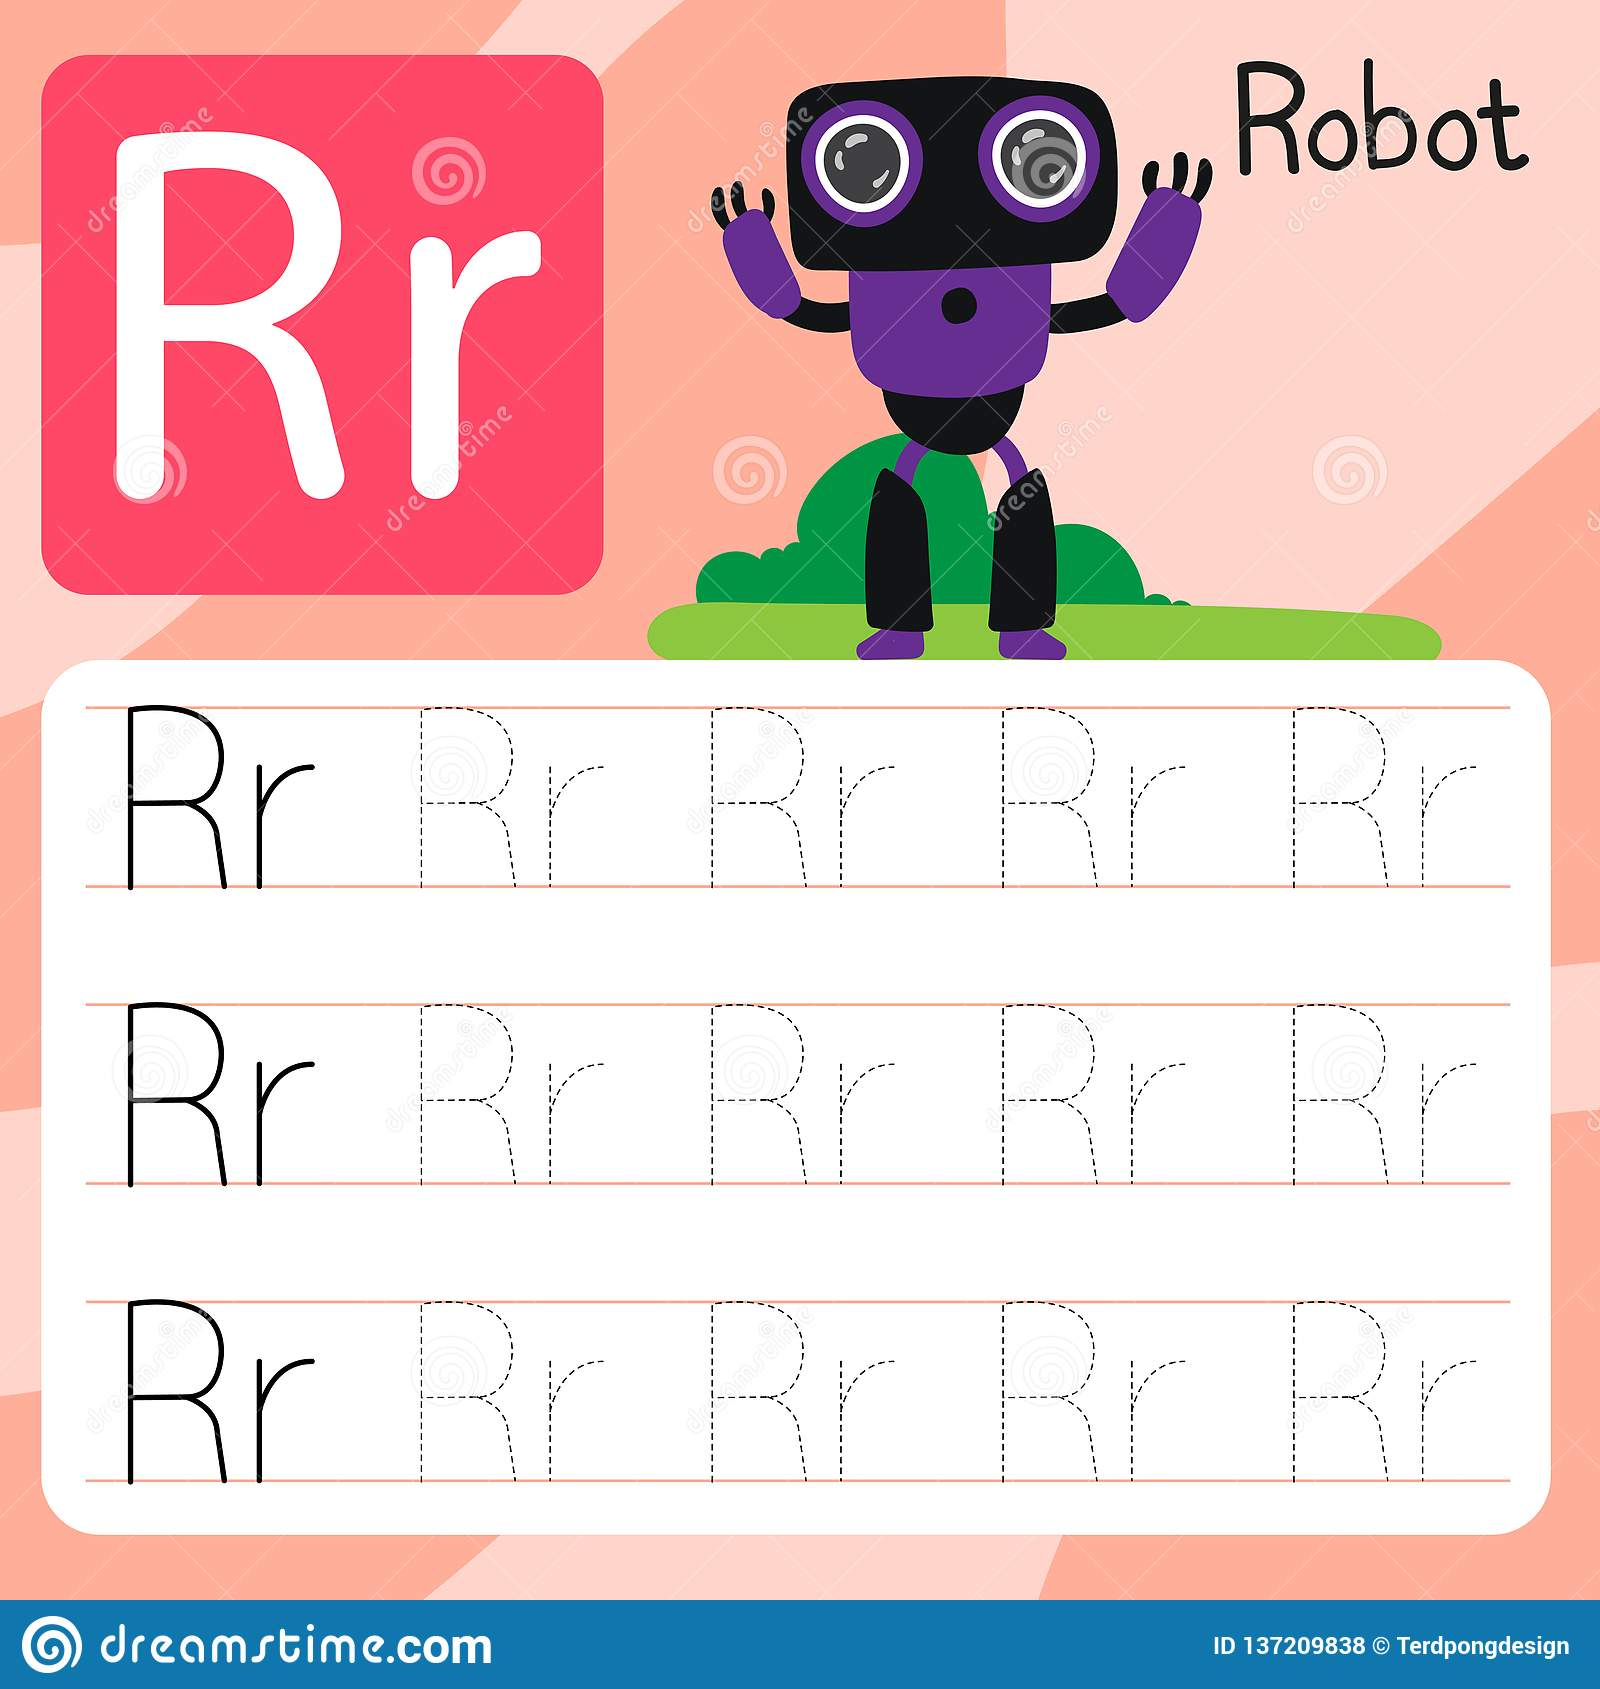 Design A Robot Worksheet